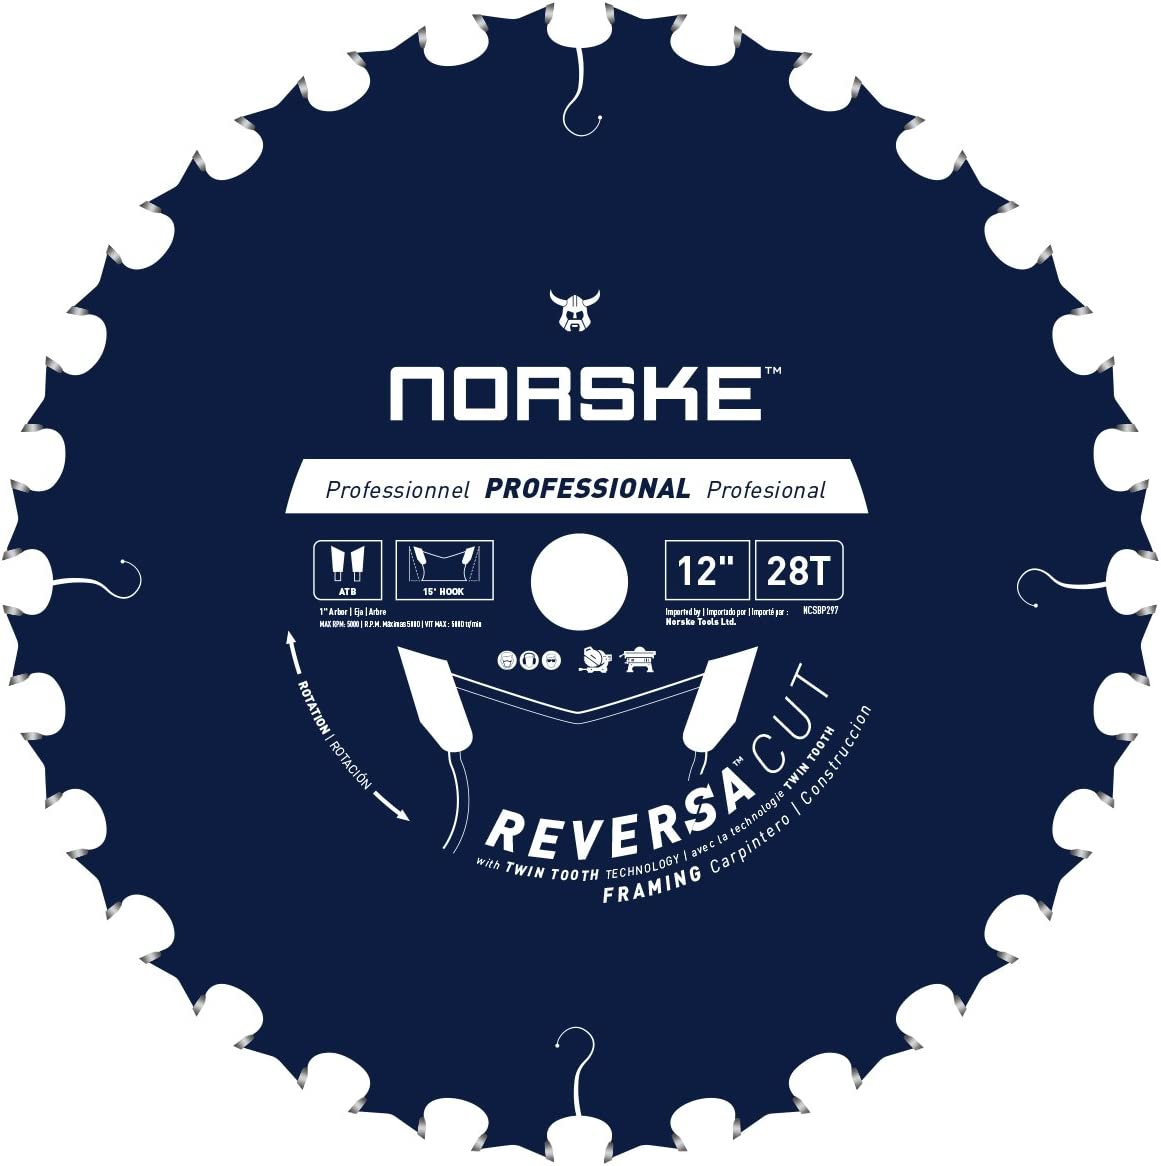 Norske Tools NCSBP297 discount 12 inch x Saw Cut Reversa NEW before selling ☆ Blad Framing 28T